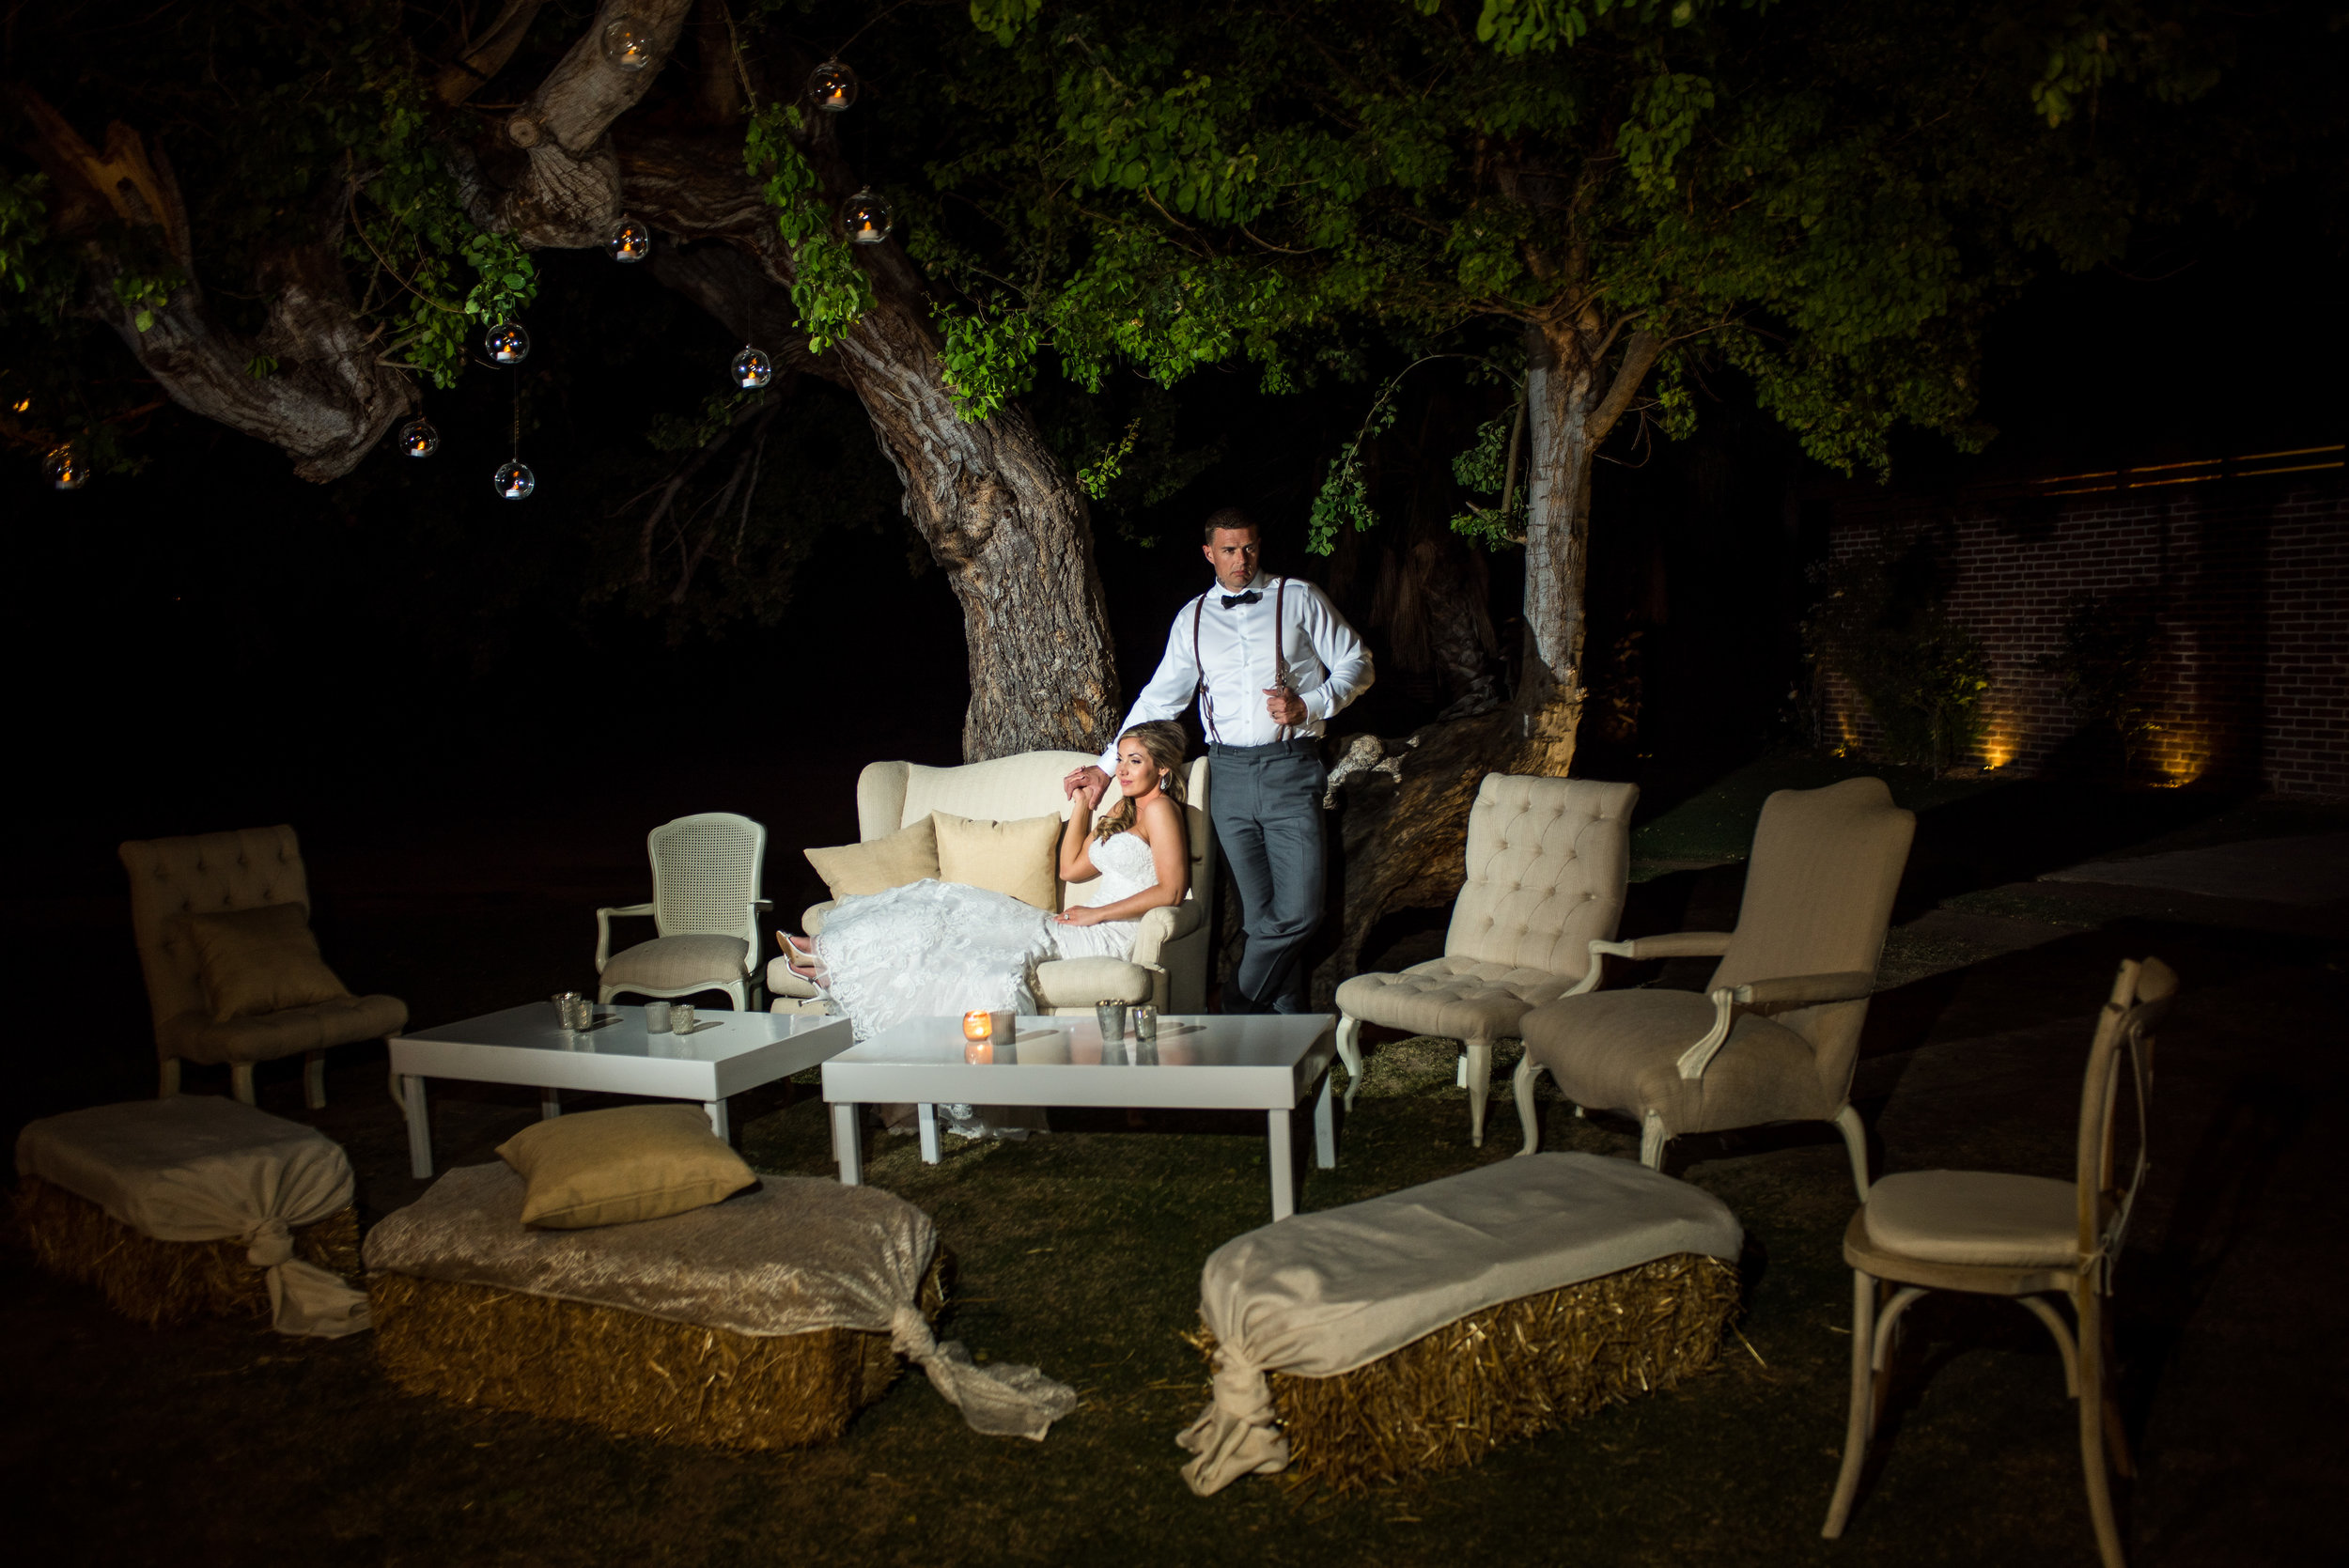 cabo wedding photographer-59.JPG